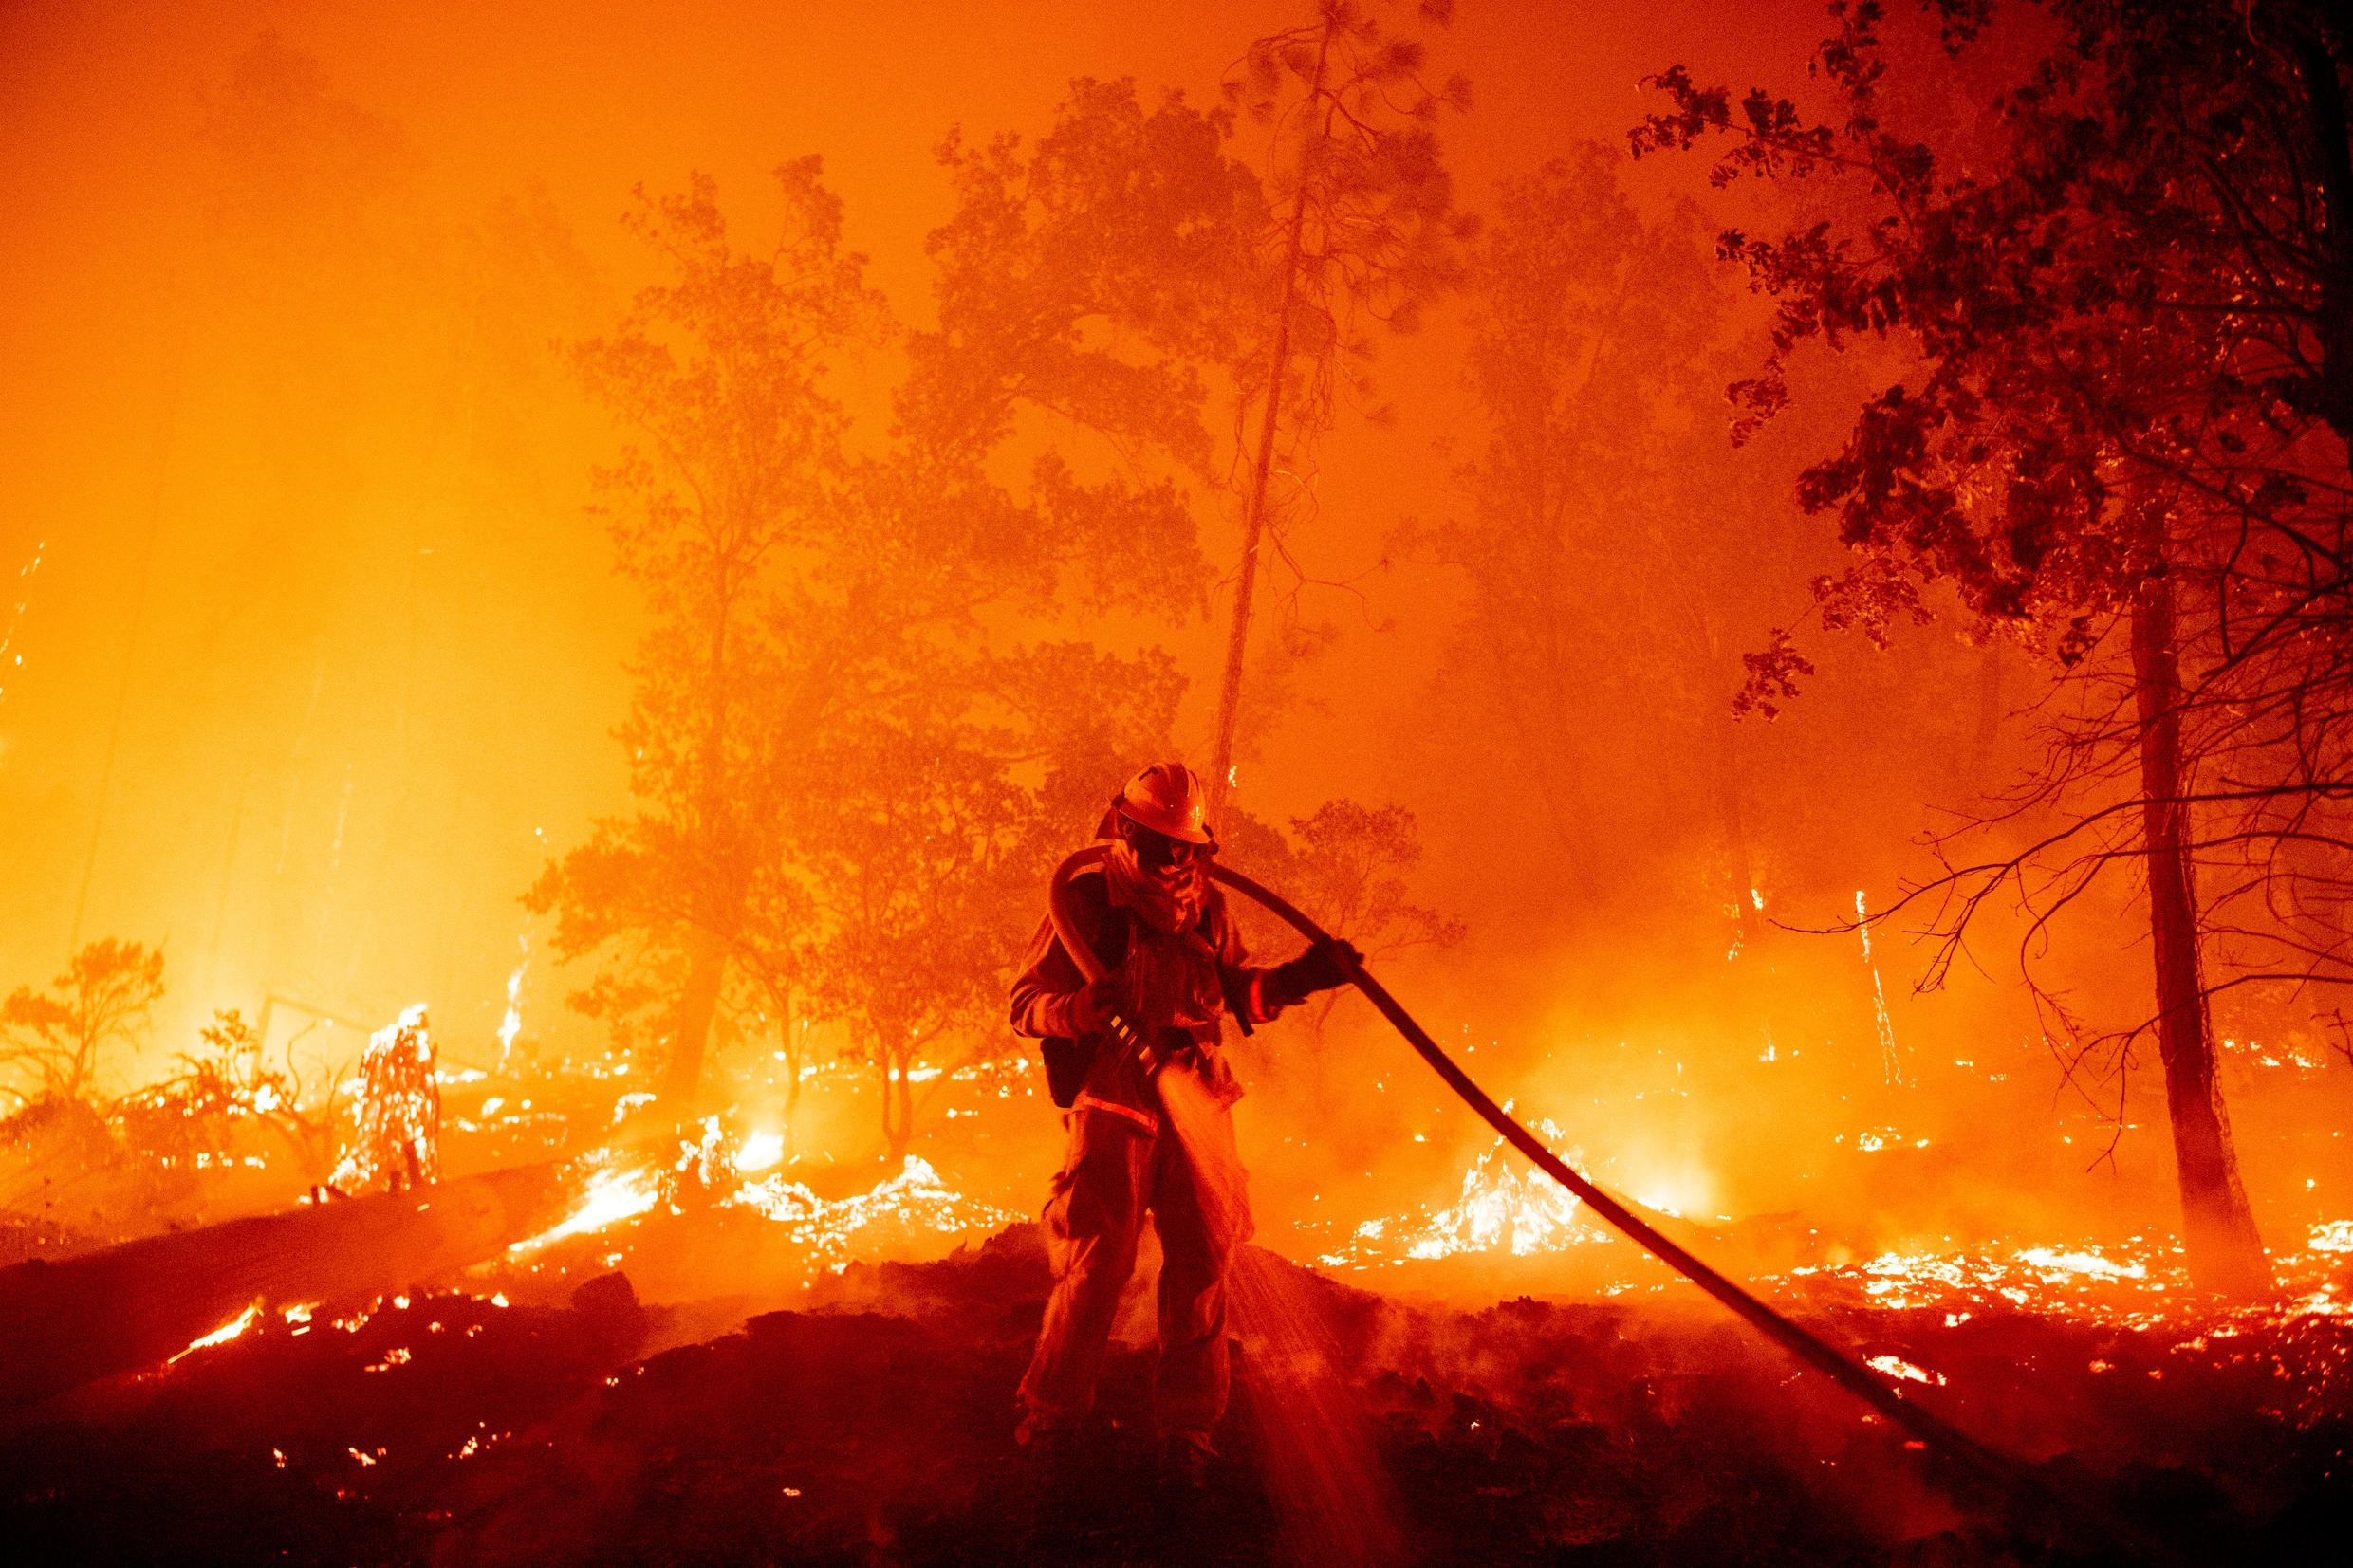 Massive wildfires that devastated vast areas in Australia, Siberia, the US West Coast and South America in 2020 have been tied to climate change